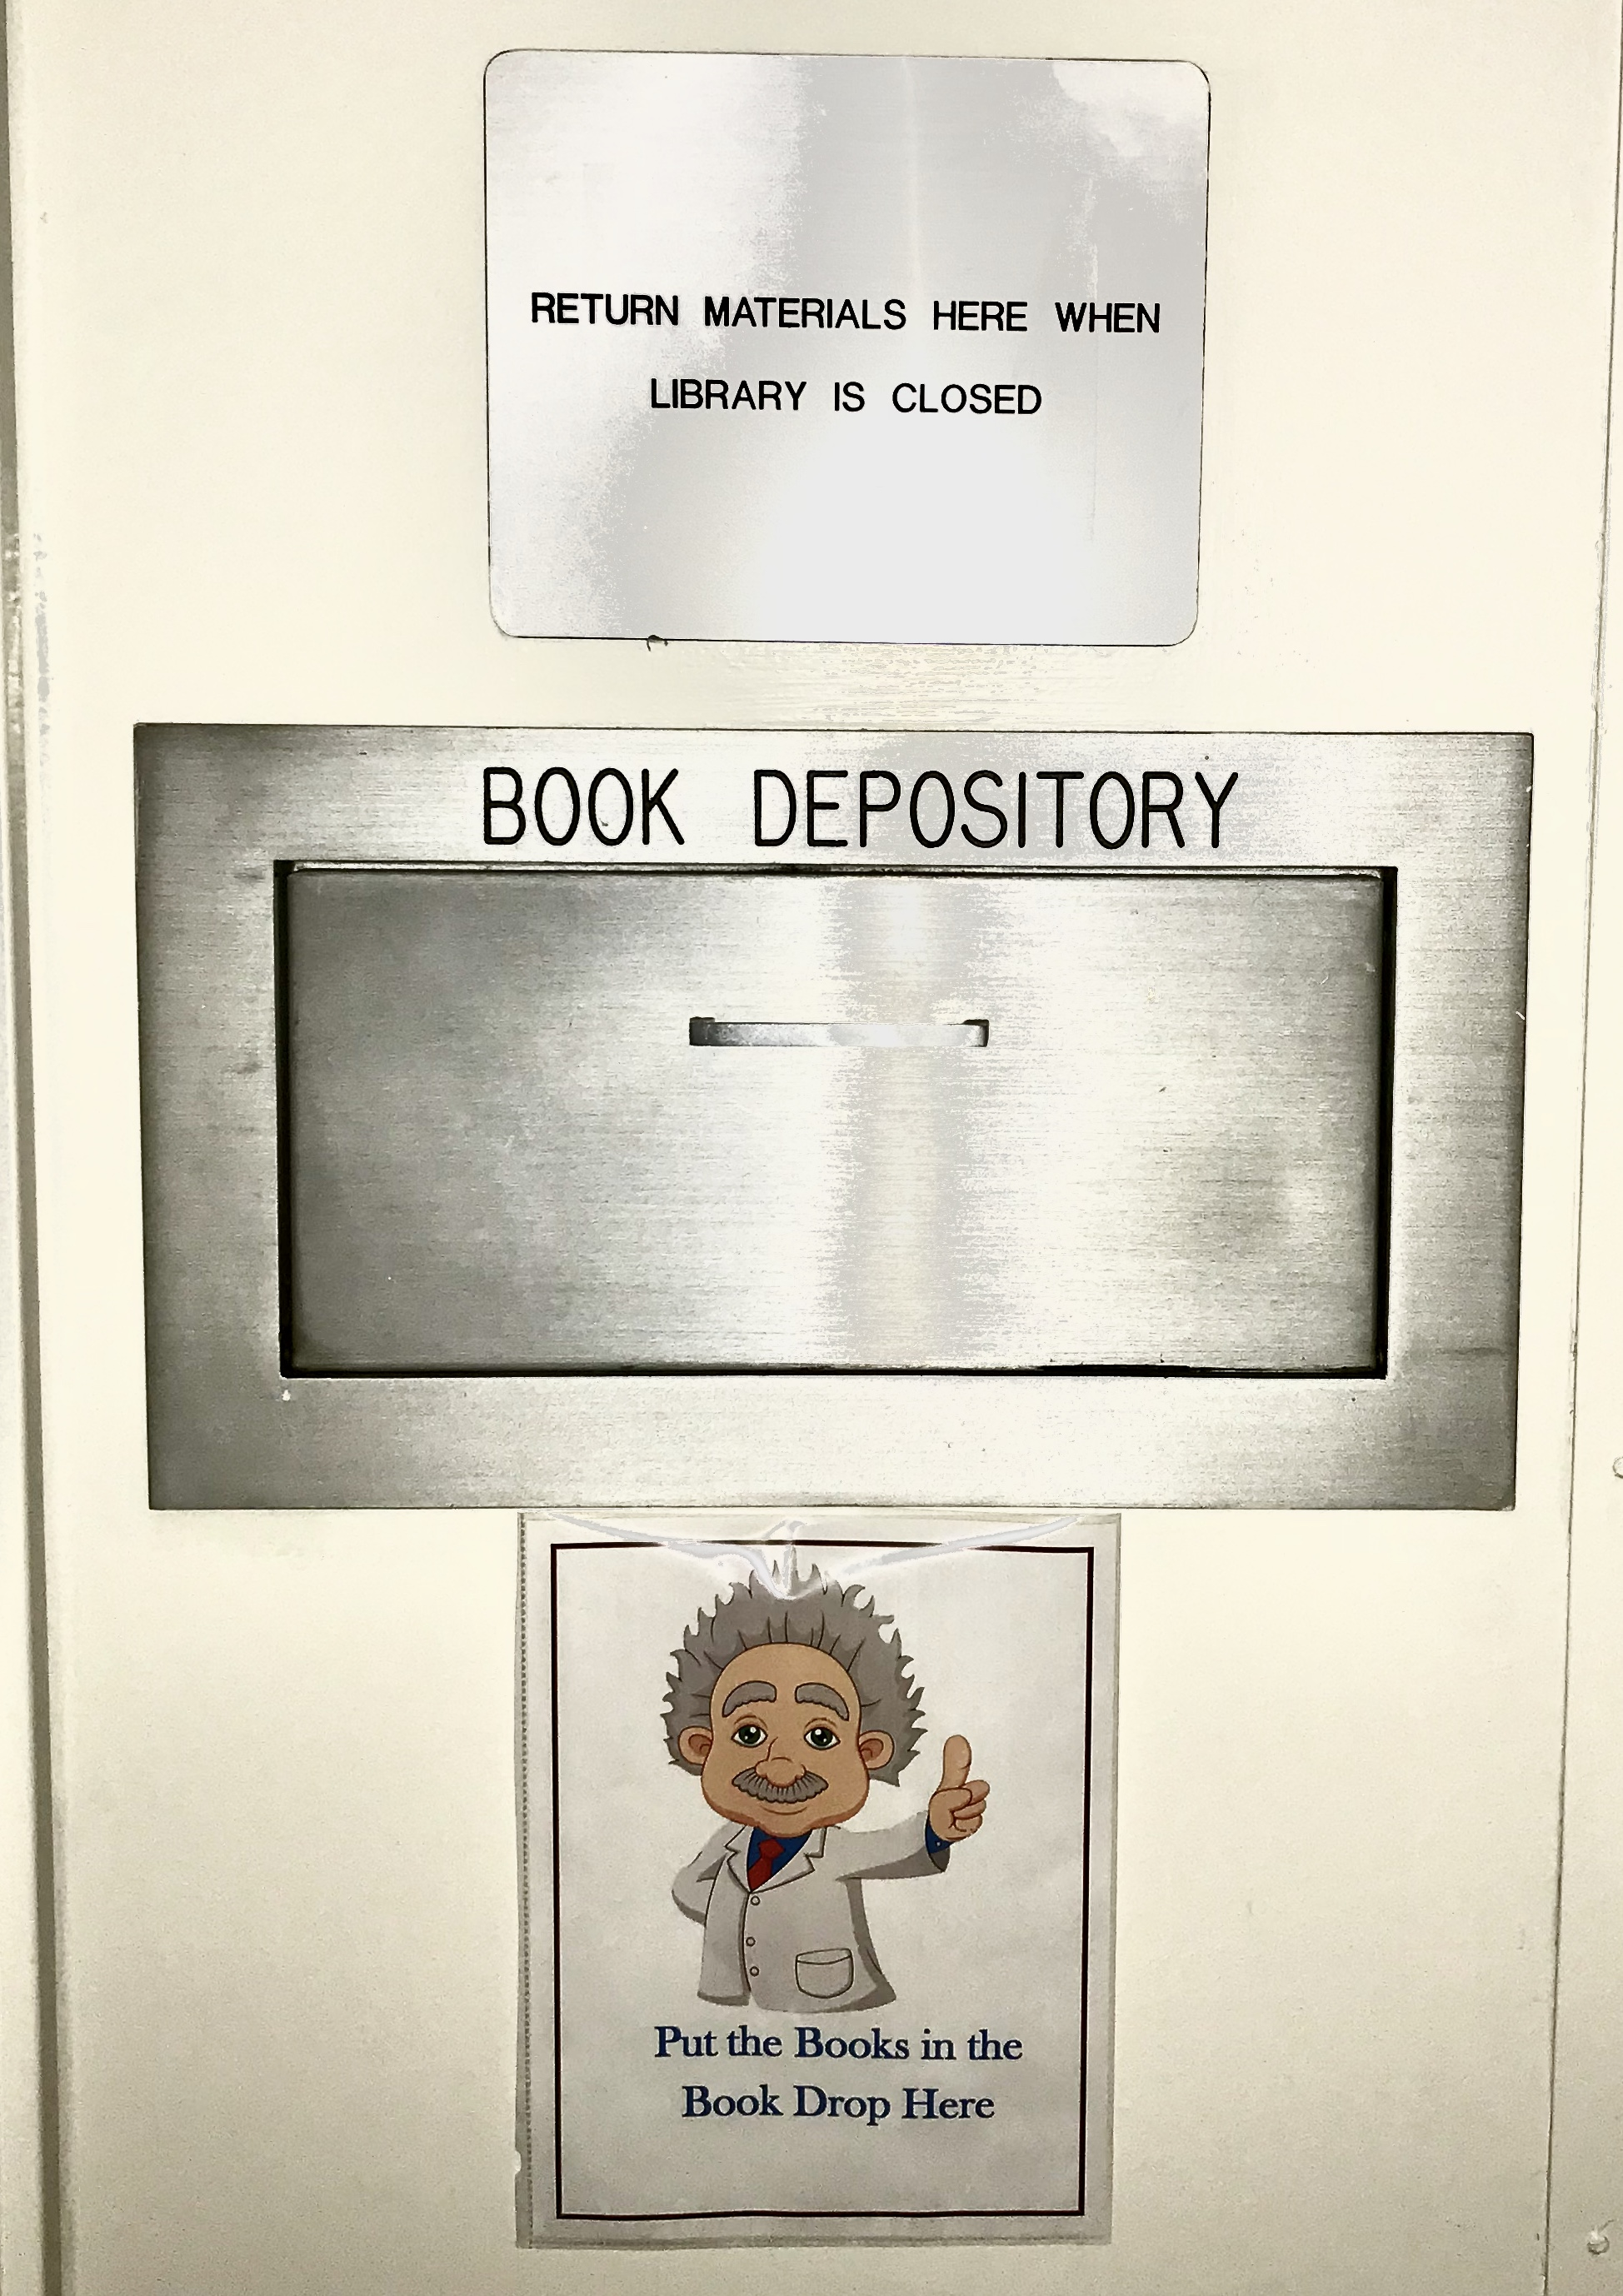 Library book return